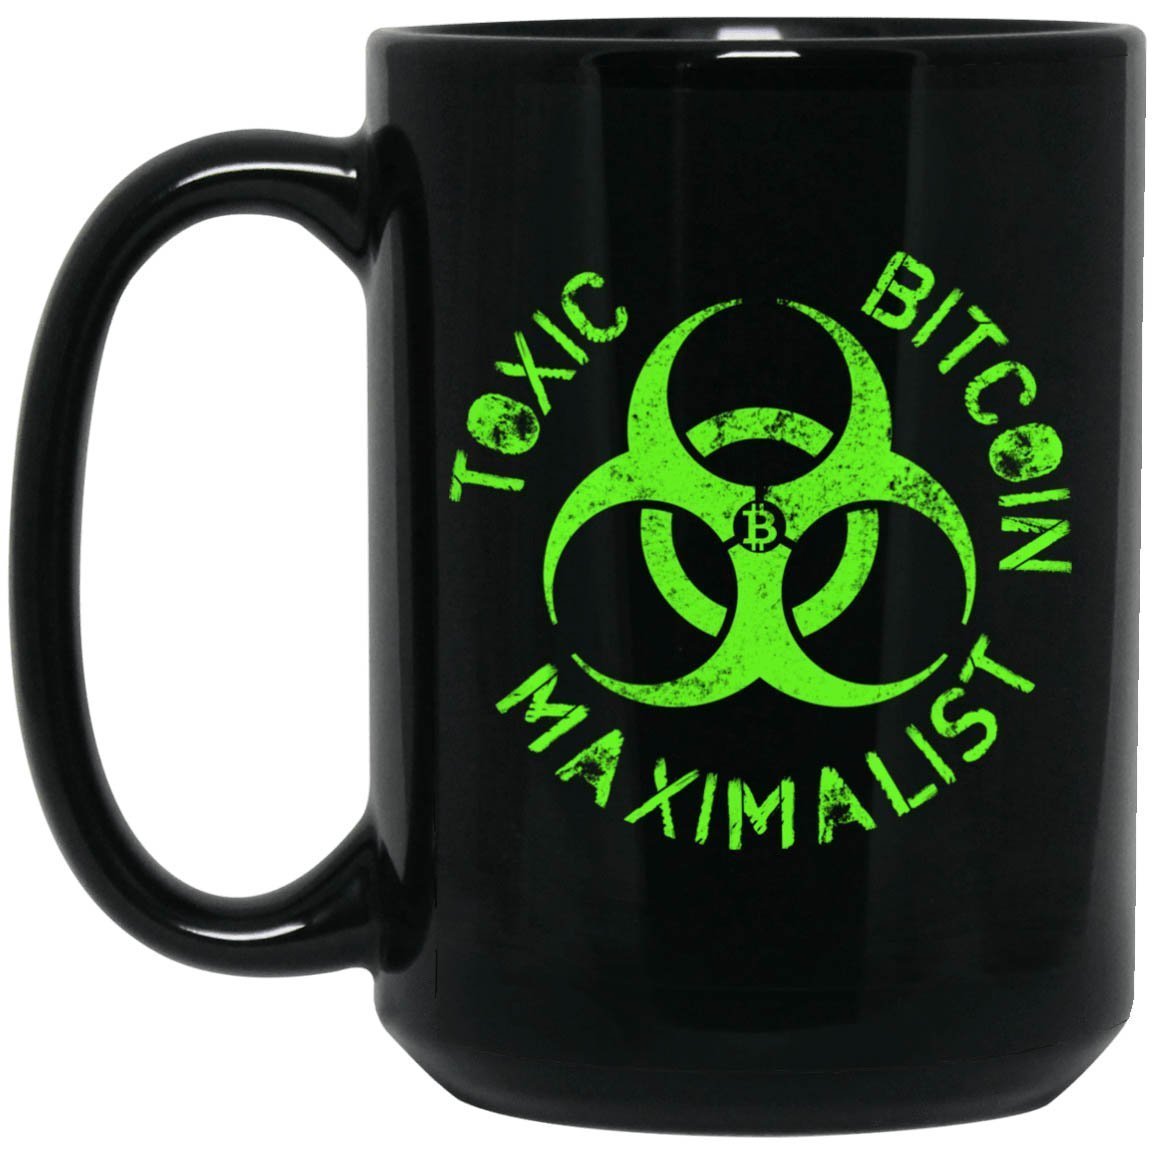 Bitcoin Coffee Mug One Size Toxic Bitcoin Maximalist Black Mug